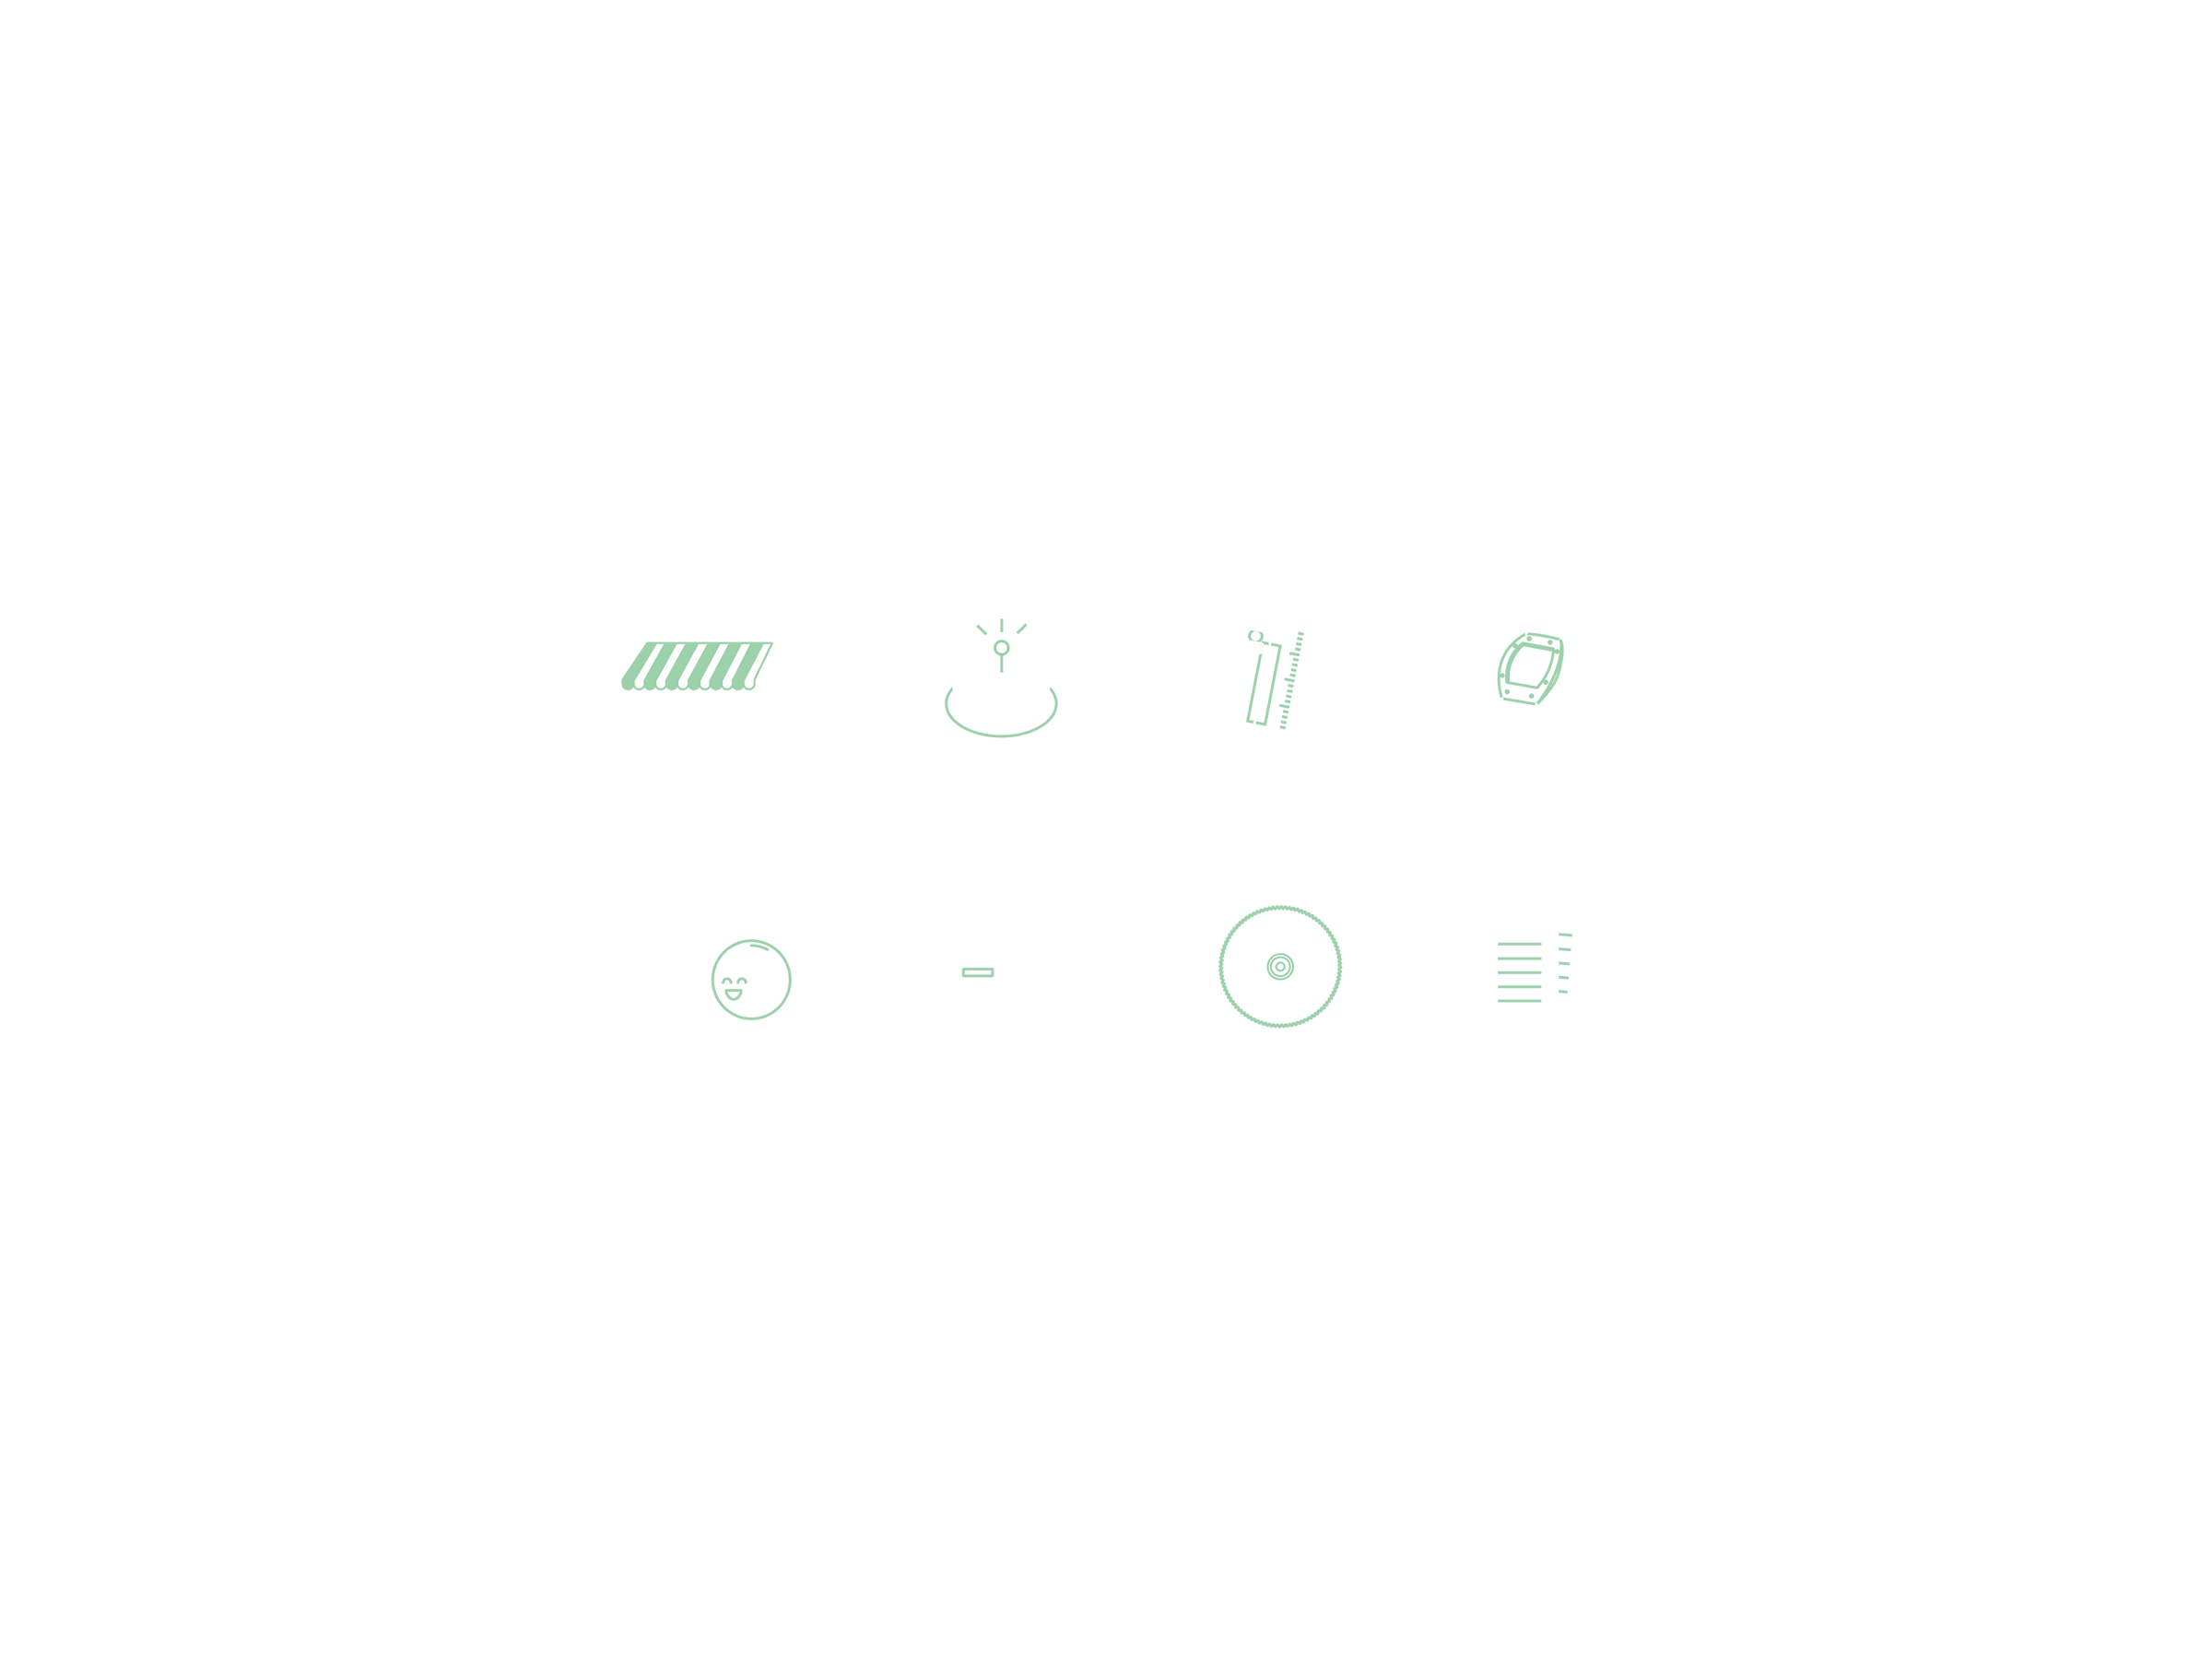 Richard Mille - DAM Category Icons illustrations